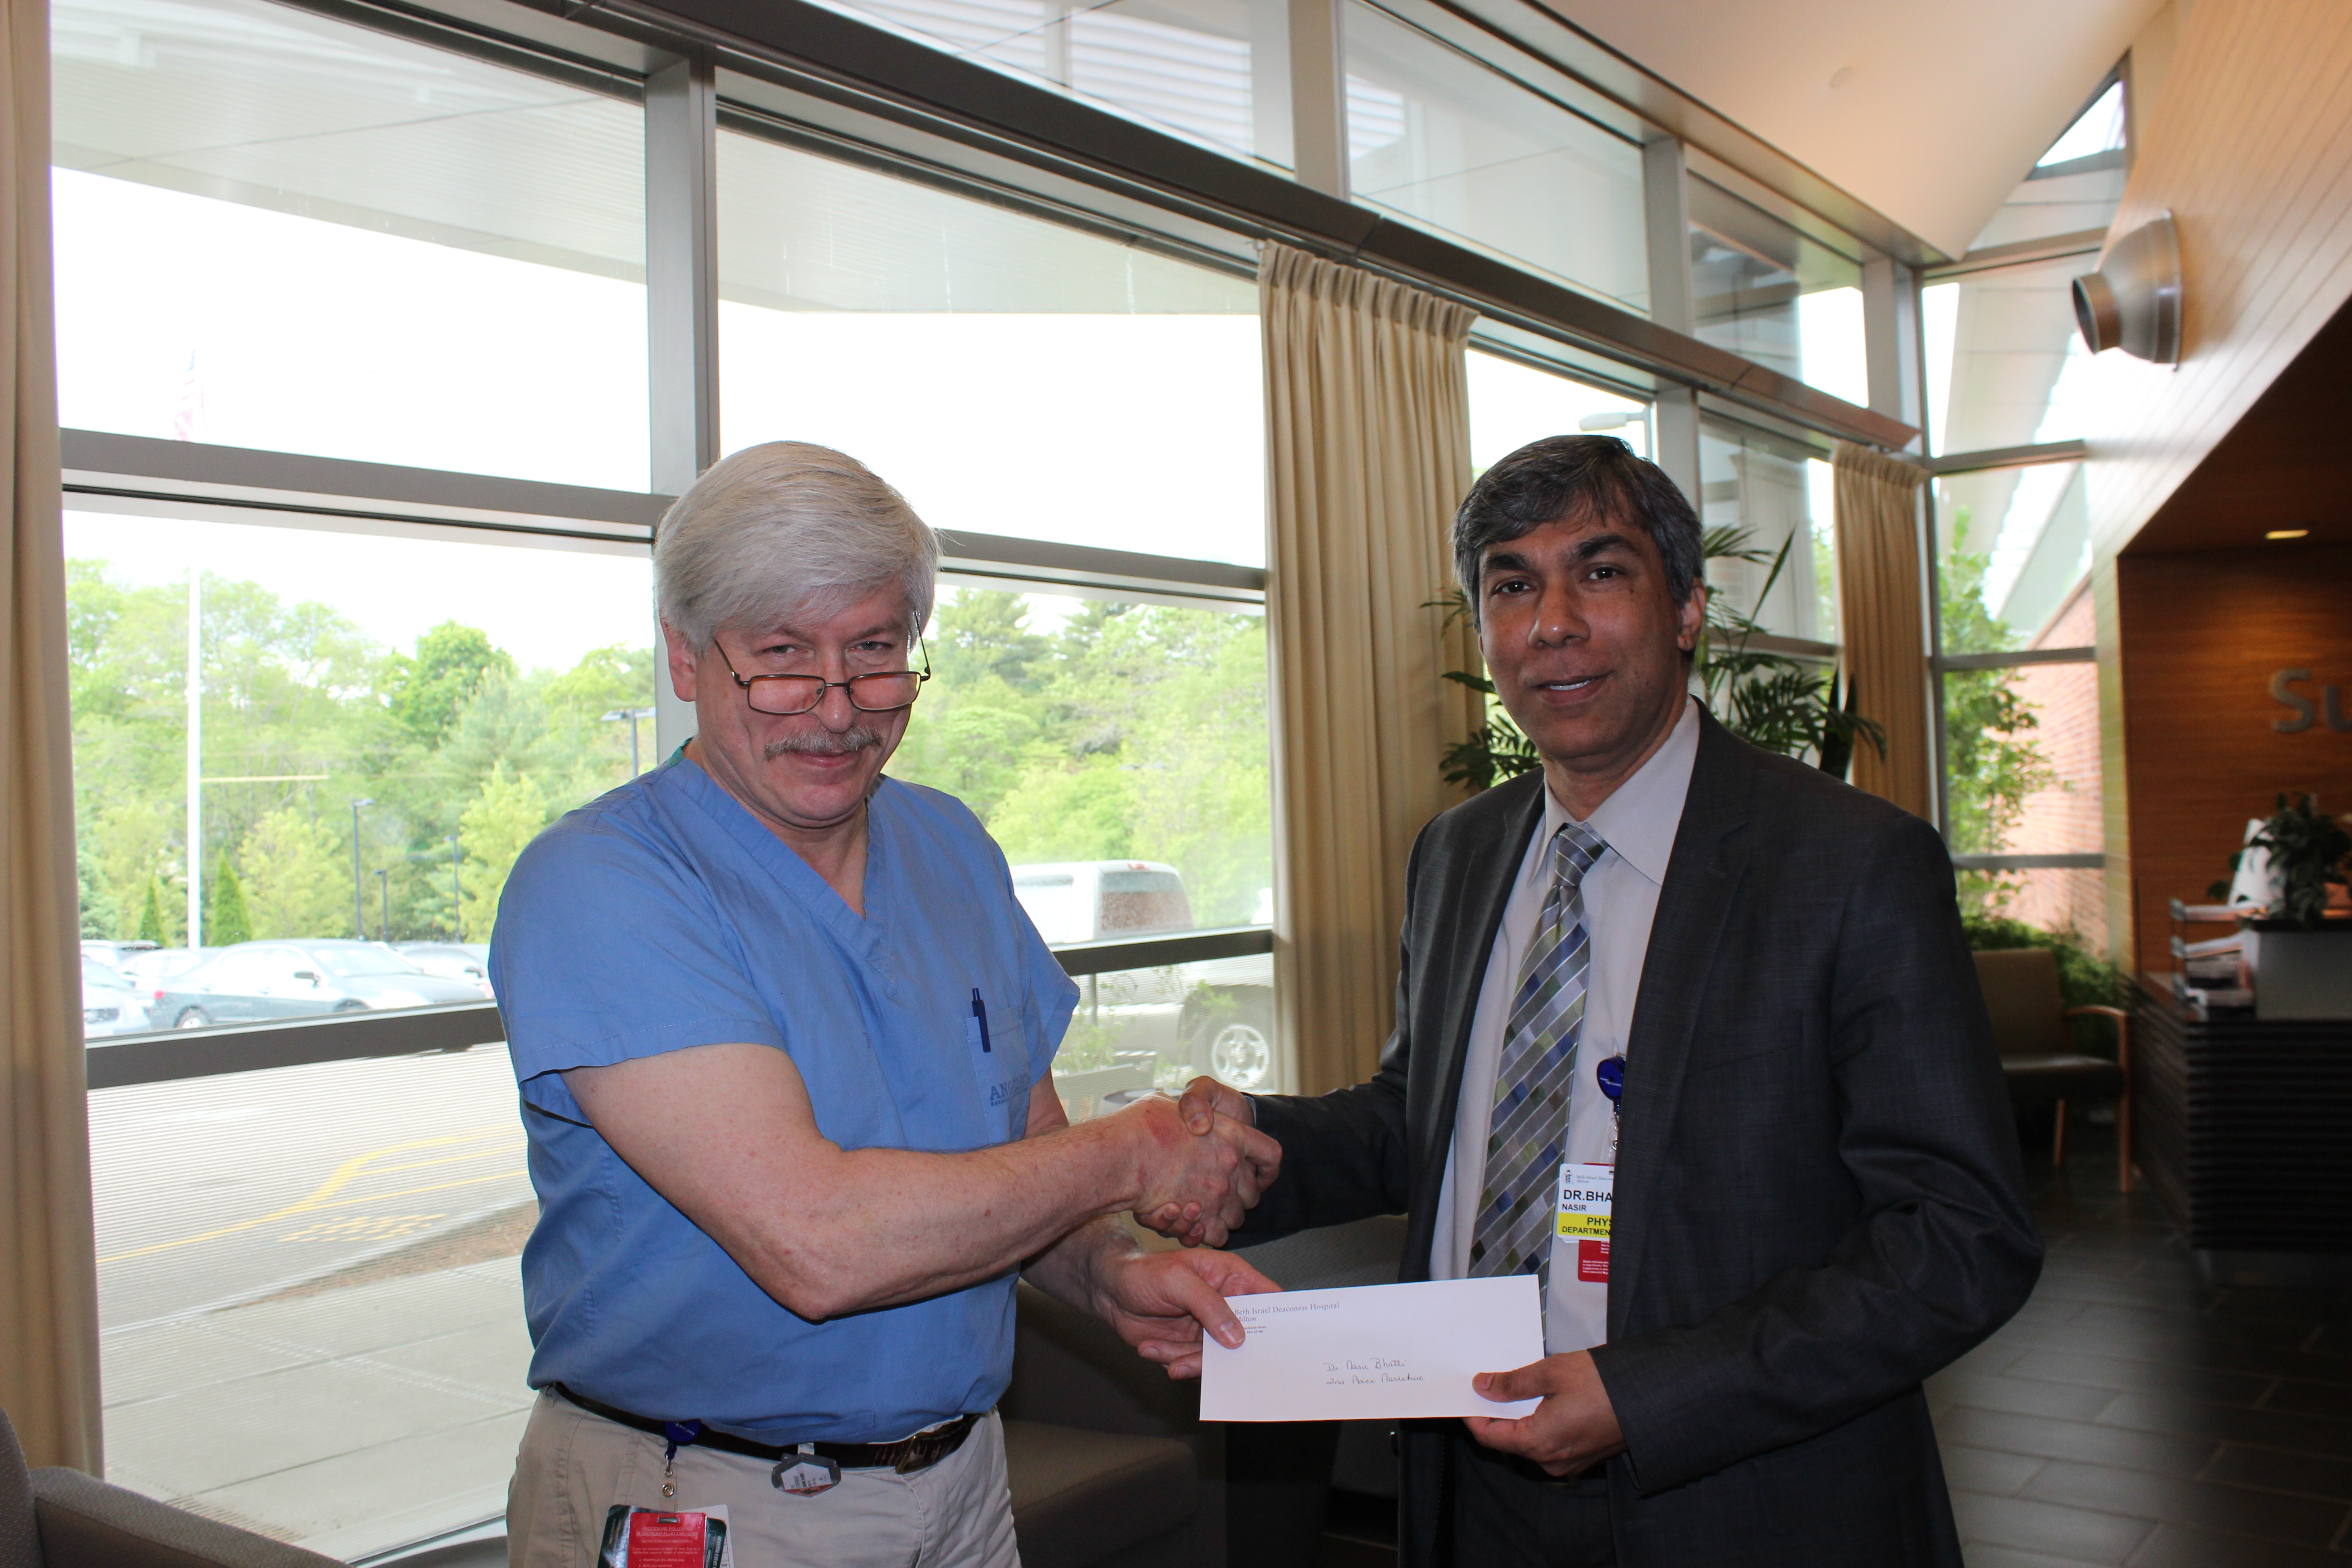 Dr Nasir Bhatti receiving 2nd place prize for creative writing at Milton-Beth Israel Hospital